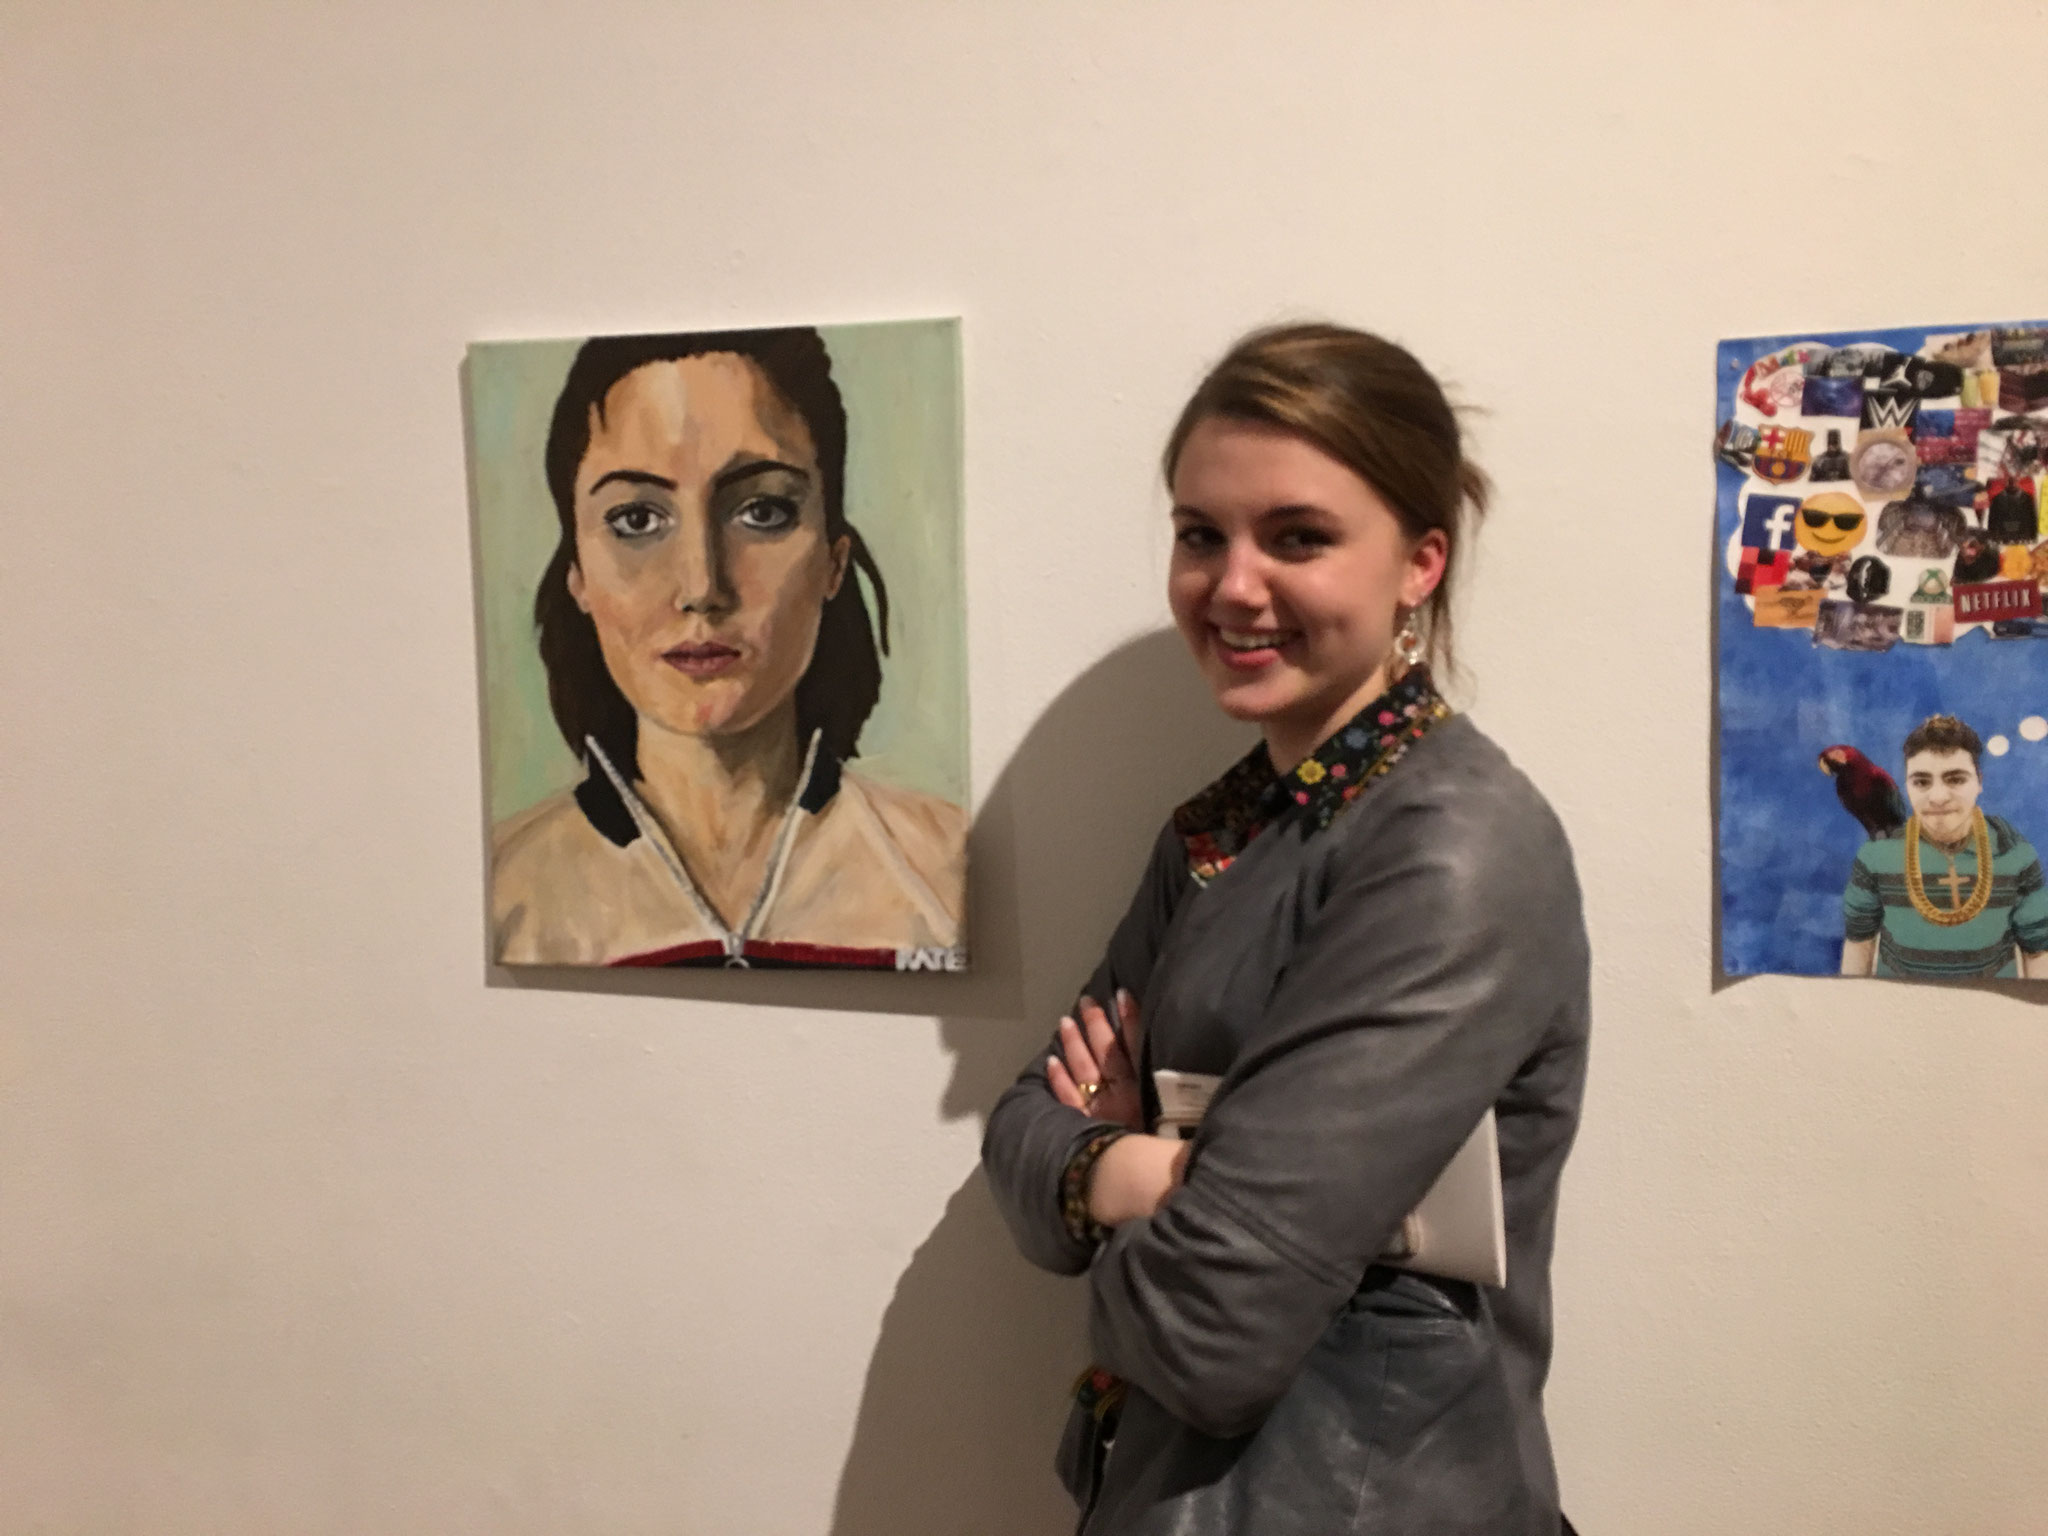 Kate K. with her artwork on display, Srping, 2018